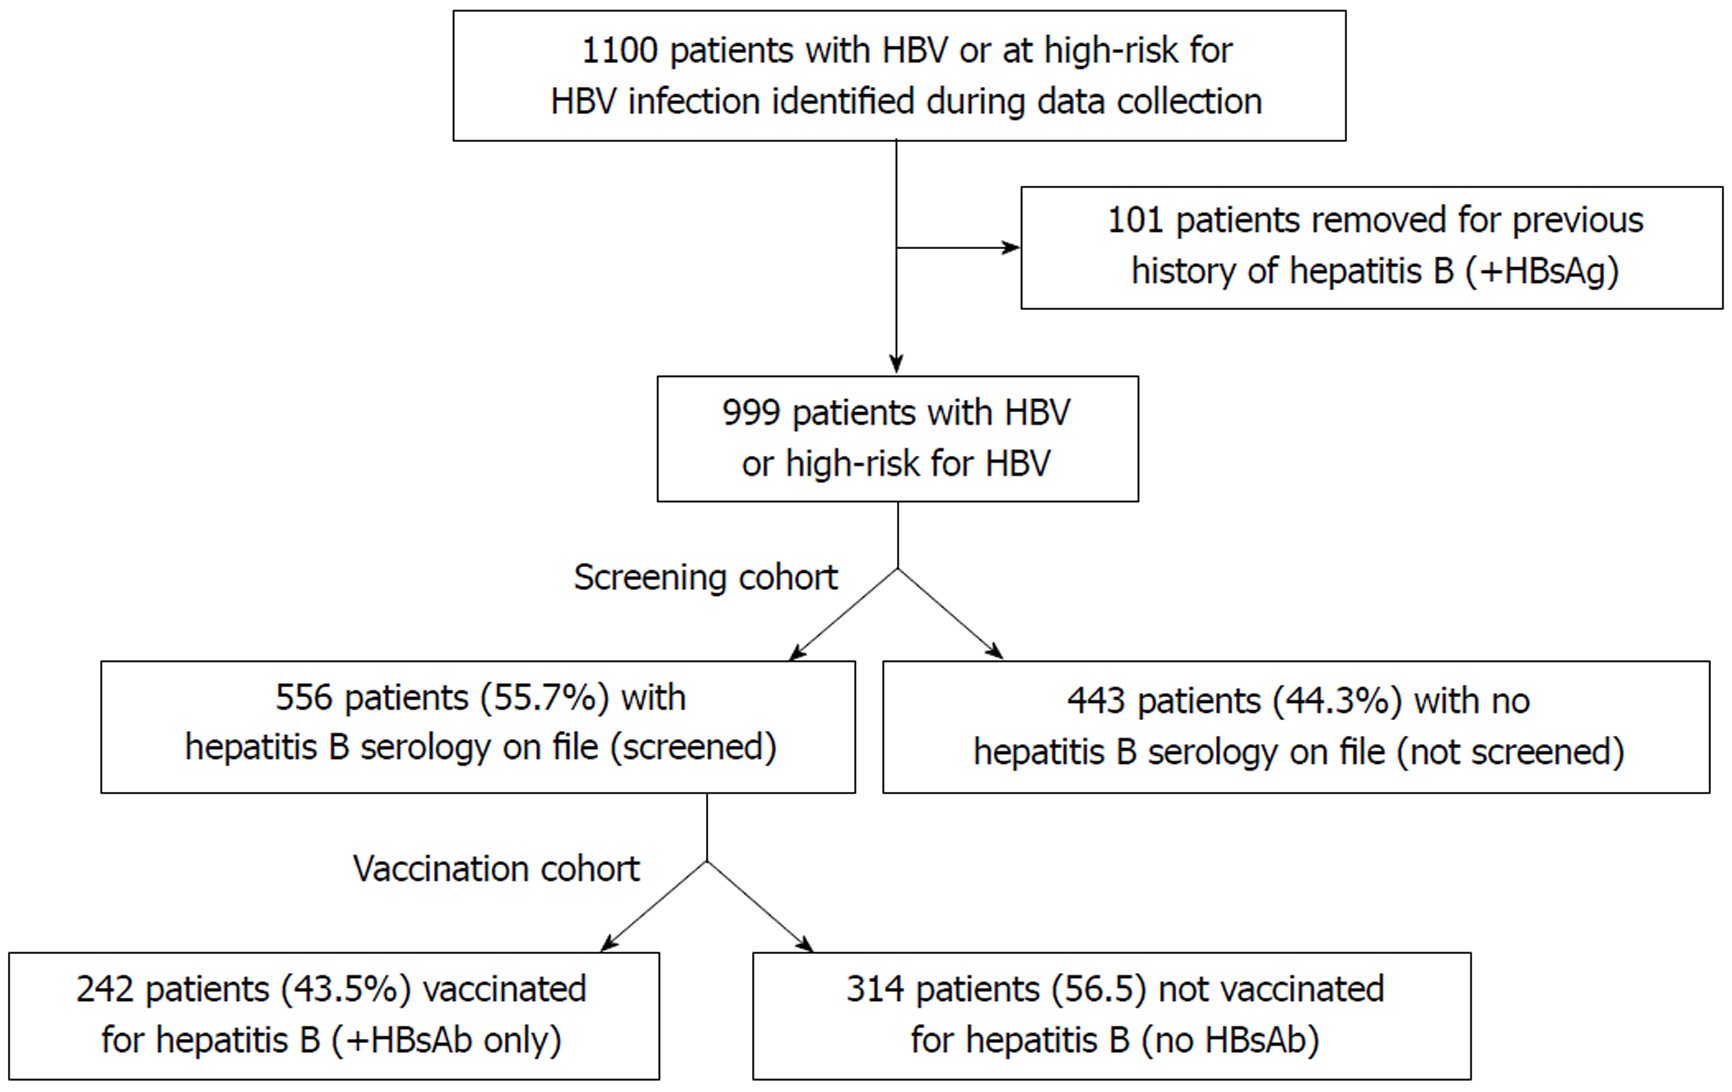 Clinical factors associated with hepatitis B screening and